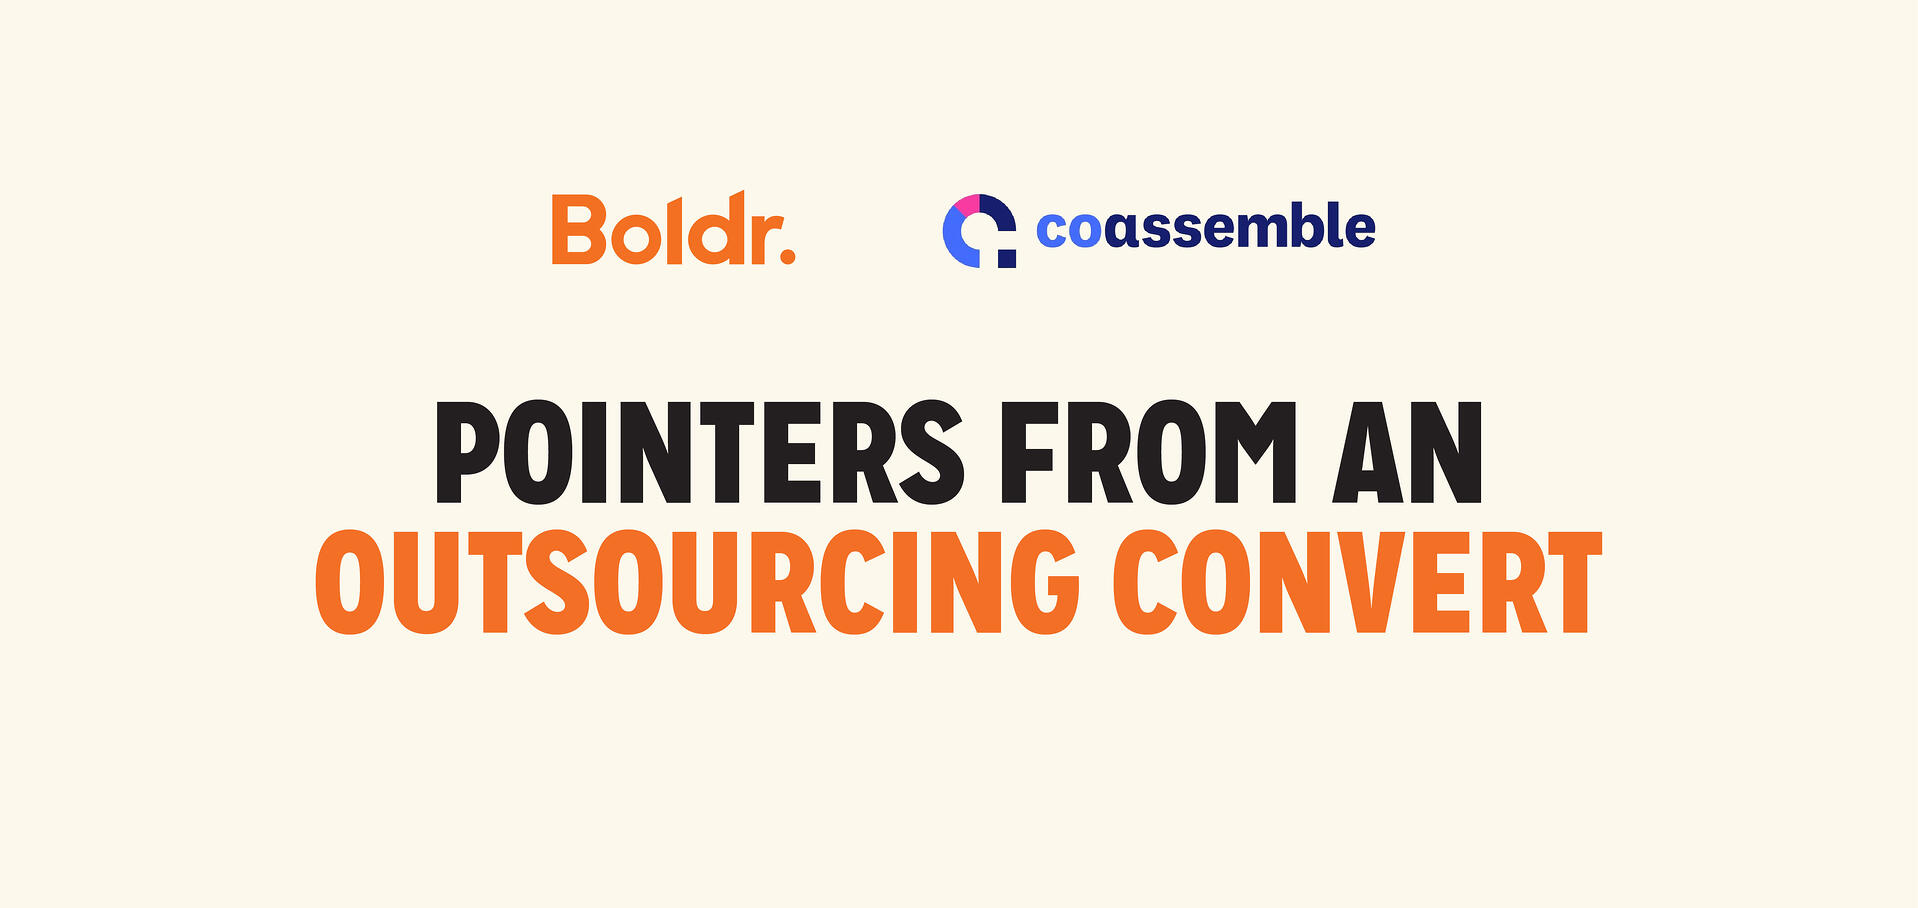 Client Story: Coassemble—Pointers from an Outsourcing Convert